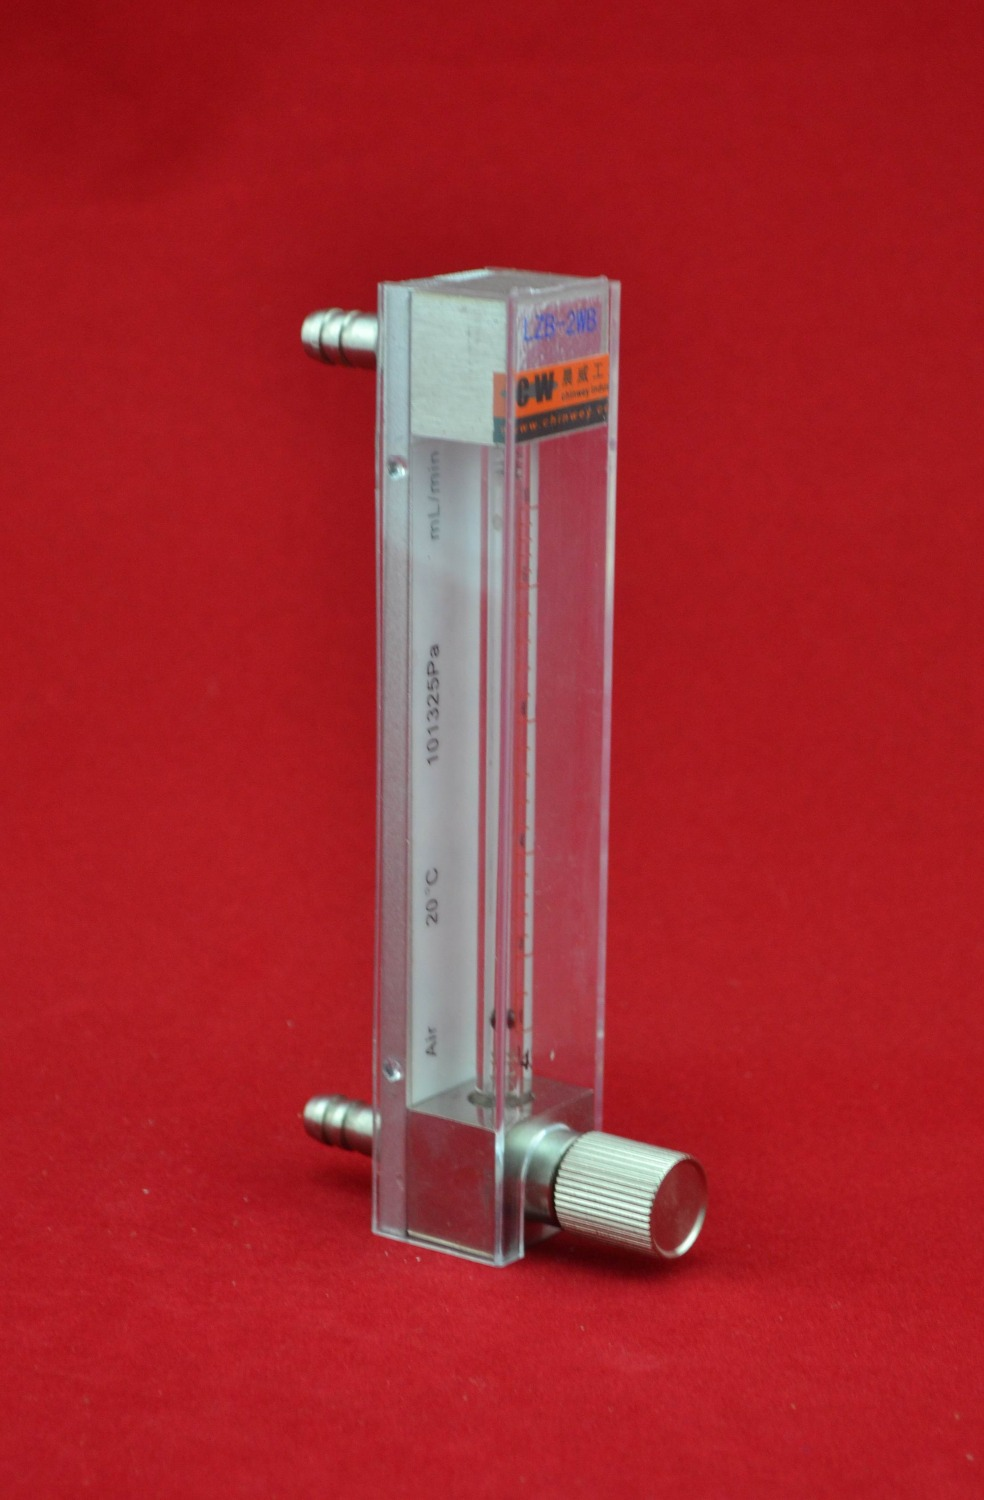 цена на LZB -3, glass rotameter flow meter with control valve for liquid and gas. conectrator ,it can adjust flow